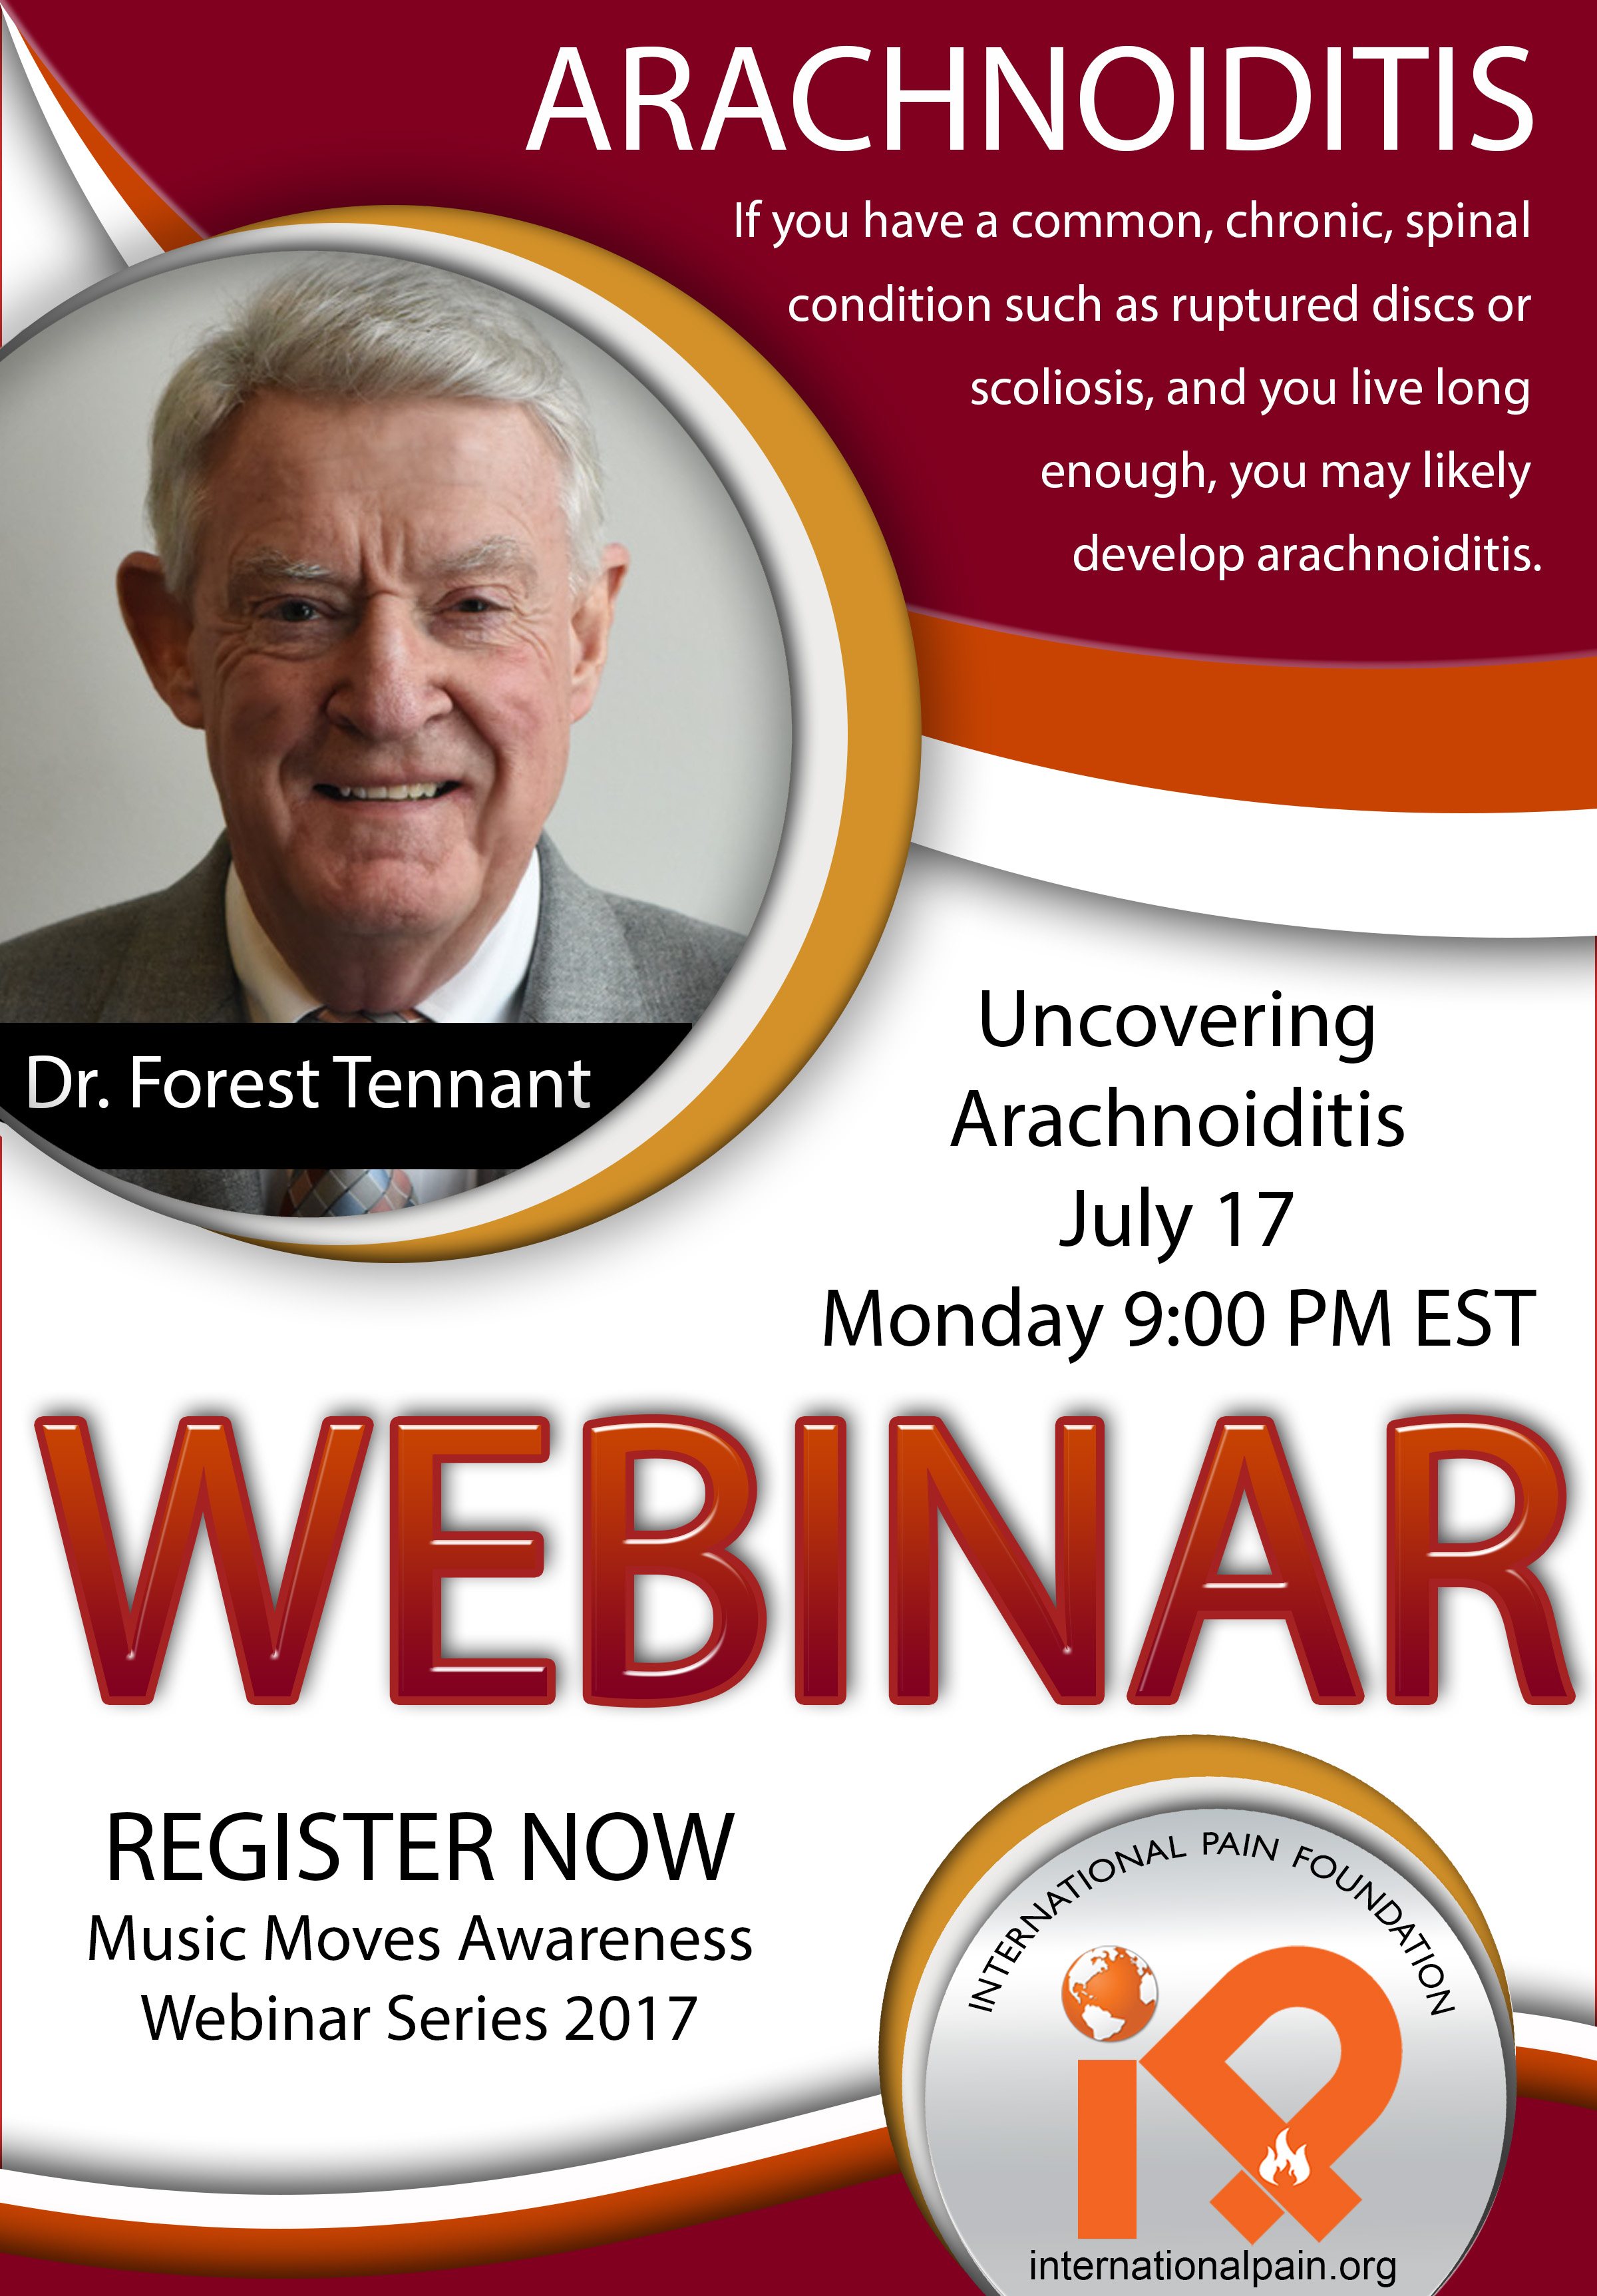 iPain webinar 2017, Dr Forest Tennant